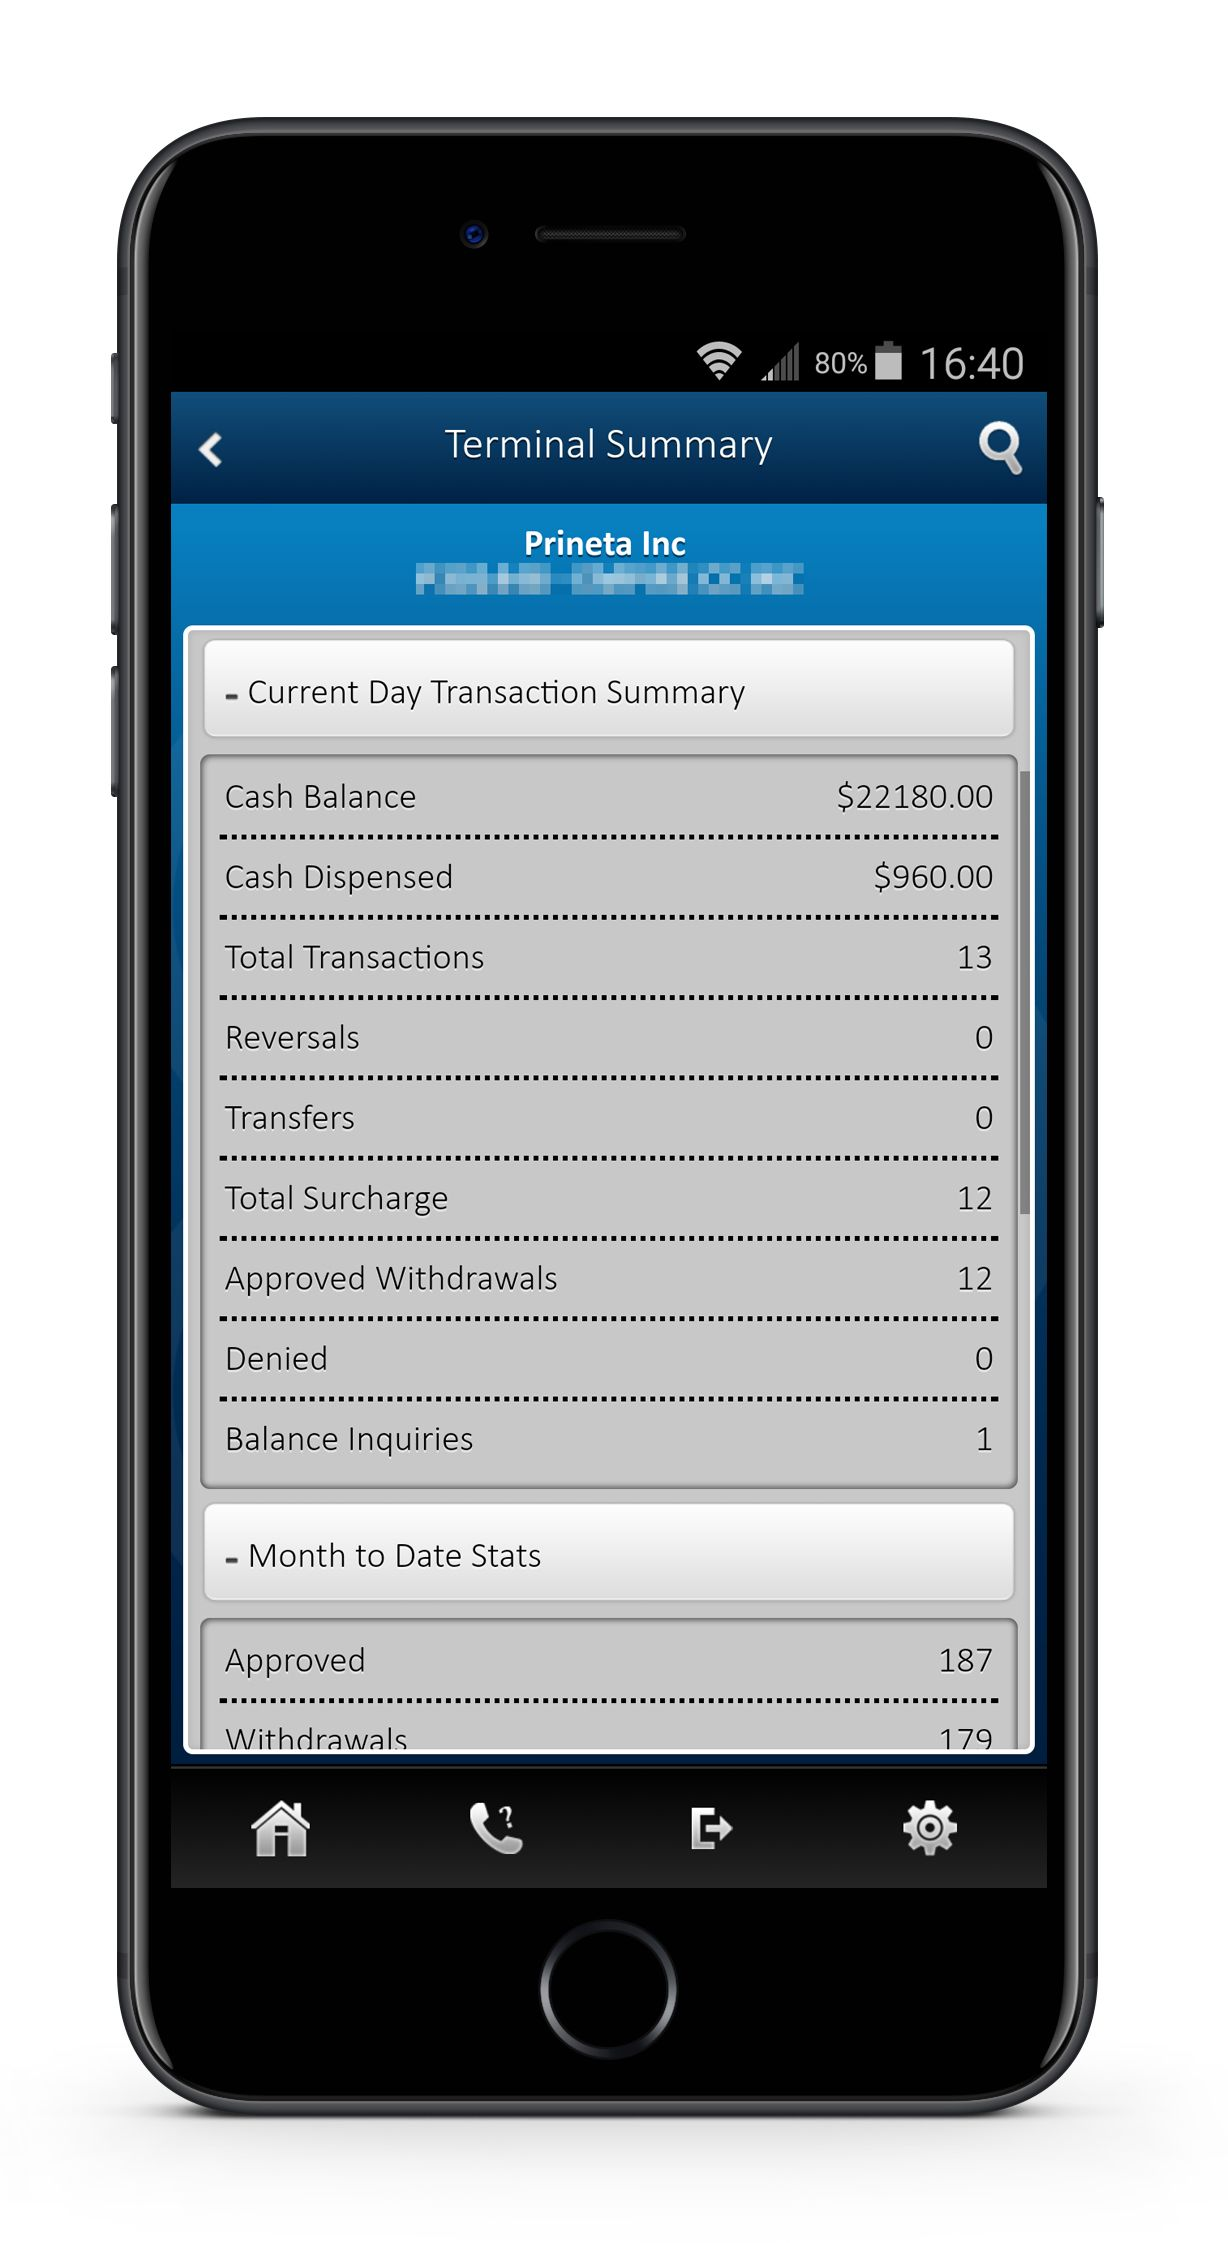 iPhone with ATM transaction reporting